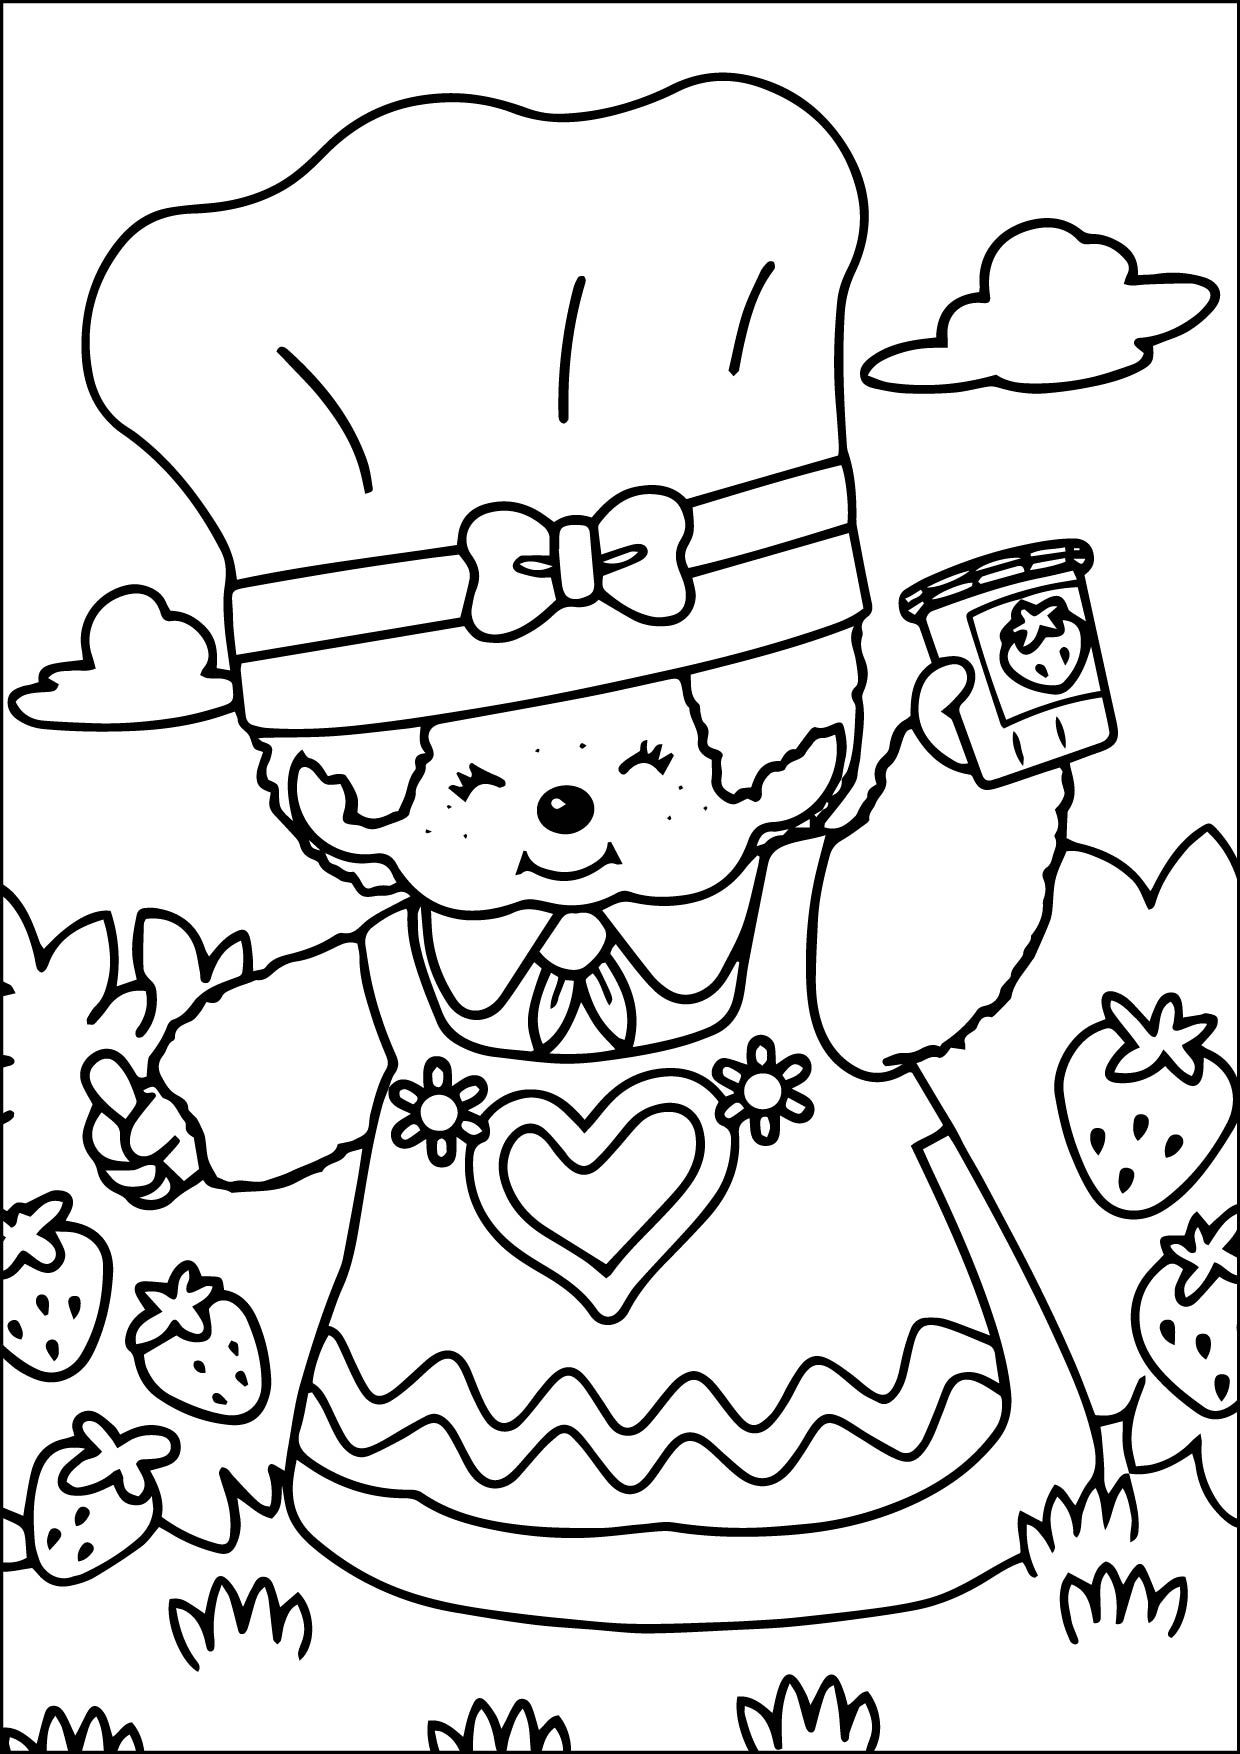 Cool Coloring Page 10 10 2015 185422 01 Check More At Http Www Mcoloring Com Index Php 2015 10 13 C Coloring Pages Cartoon Coloring Pages Cool Coloring Pages